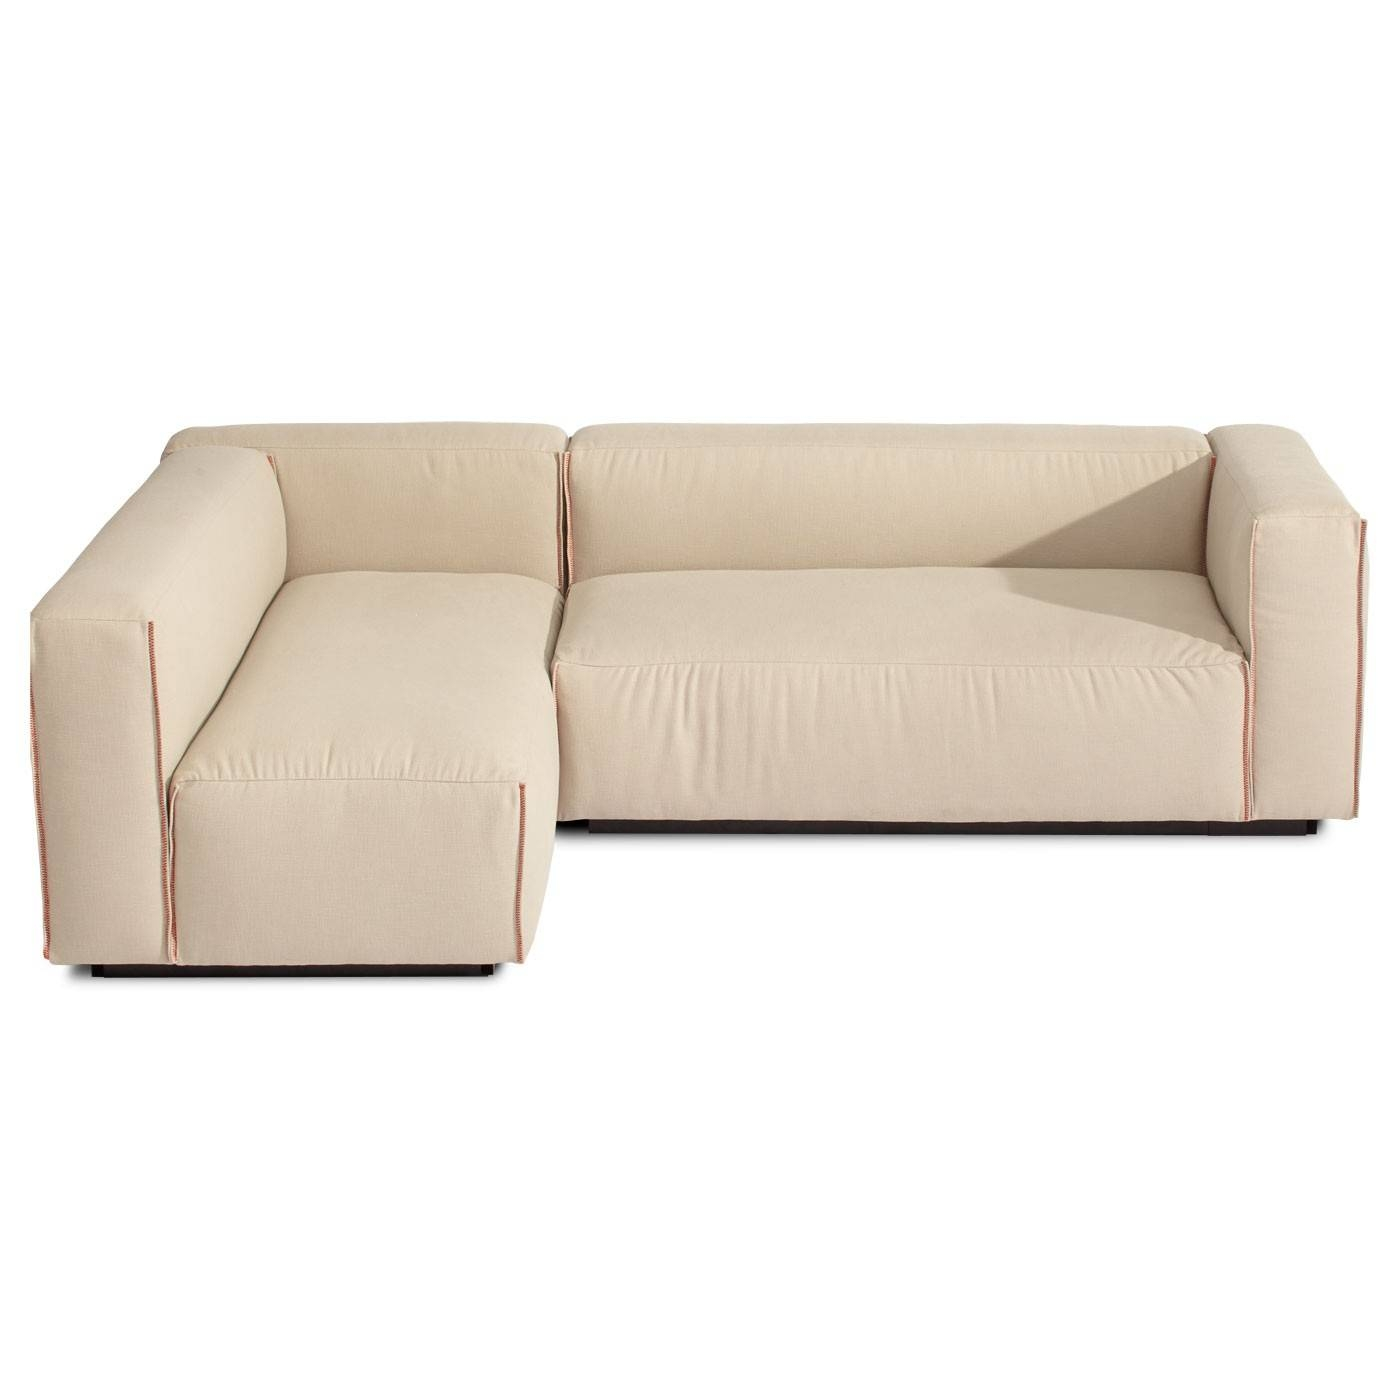 Small Terracota Armless Sectional Sofas With Sleeper – S3net In Armless Sectional Sofas (View 18 of 30)